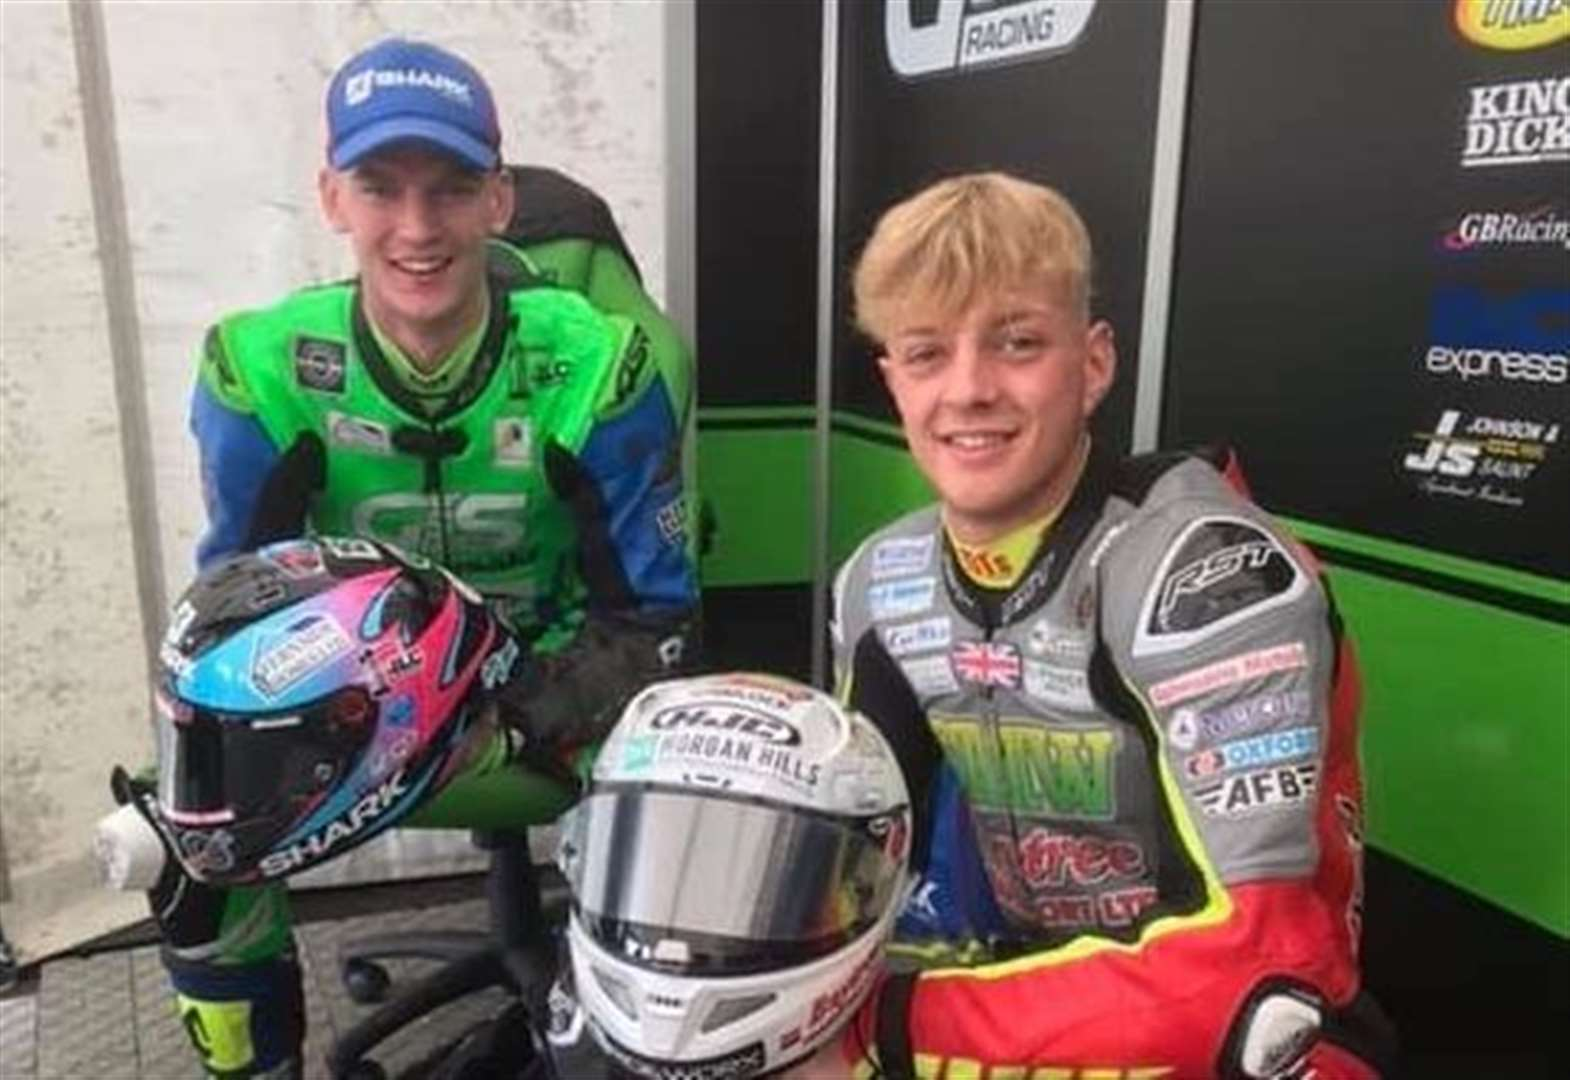 MOTORSPORT: G&S Racing Kawasaki trio geared up for season climax